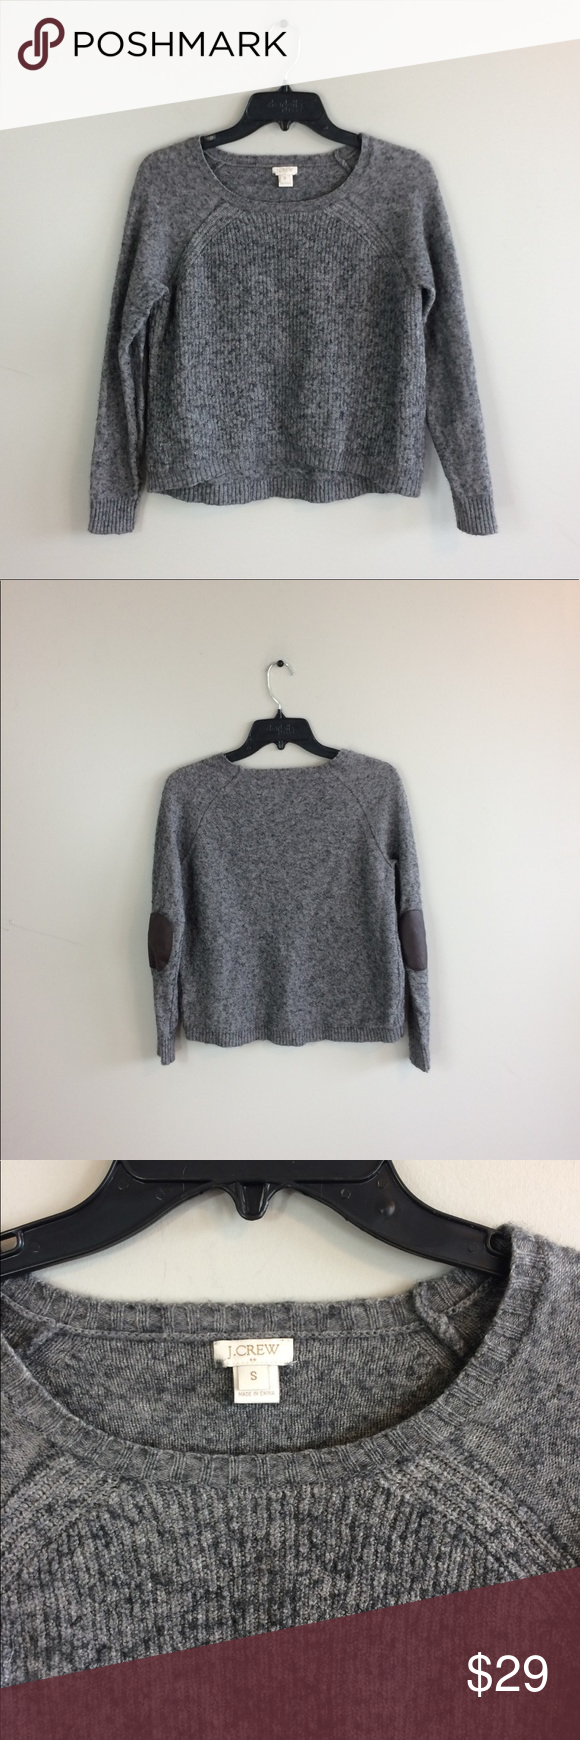 """J. Crew Elbow Patch Pullover Sweater From J. Crew Factory. Slight Hi-lo style. 20"""" length front: 22"""" length back: 18"""" pit to pit: 25"""" sleeve to shoulder: no trades. J. Crew Factory Sweaters Crew & Scoop Necks"""